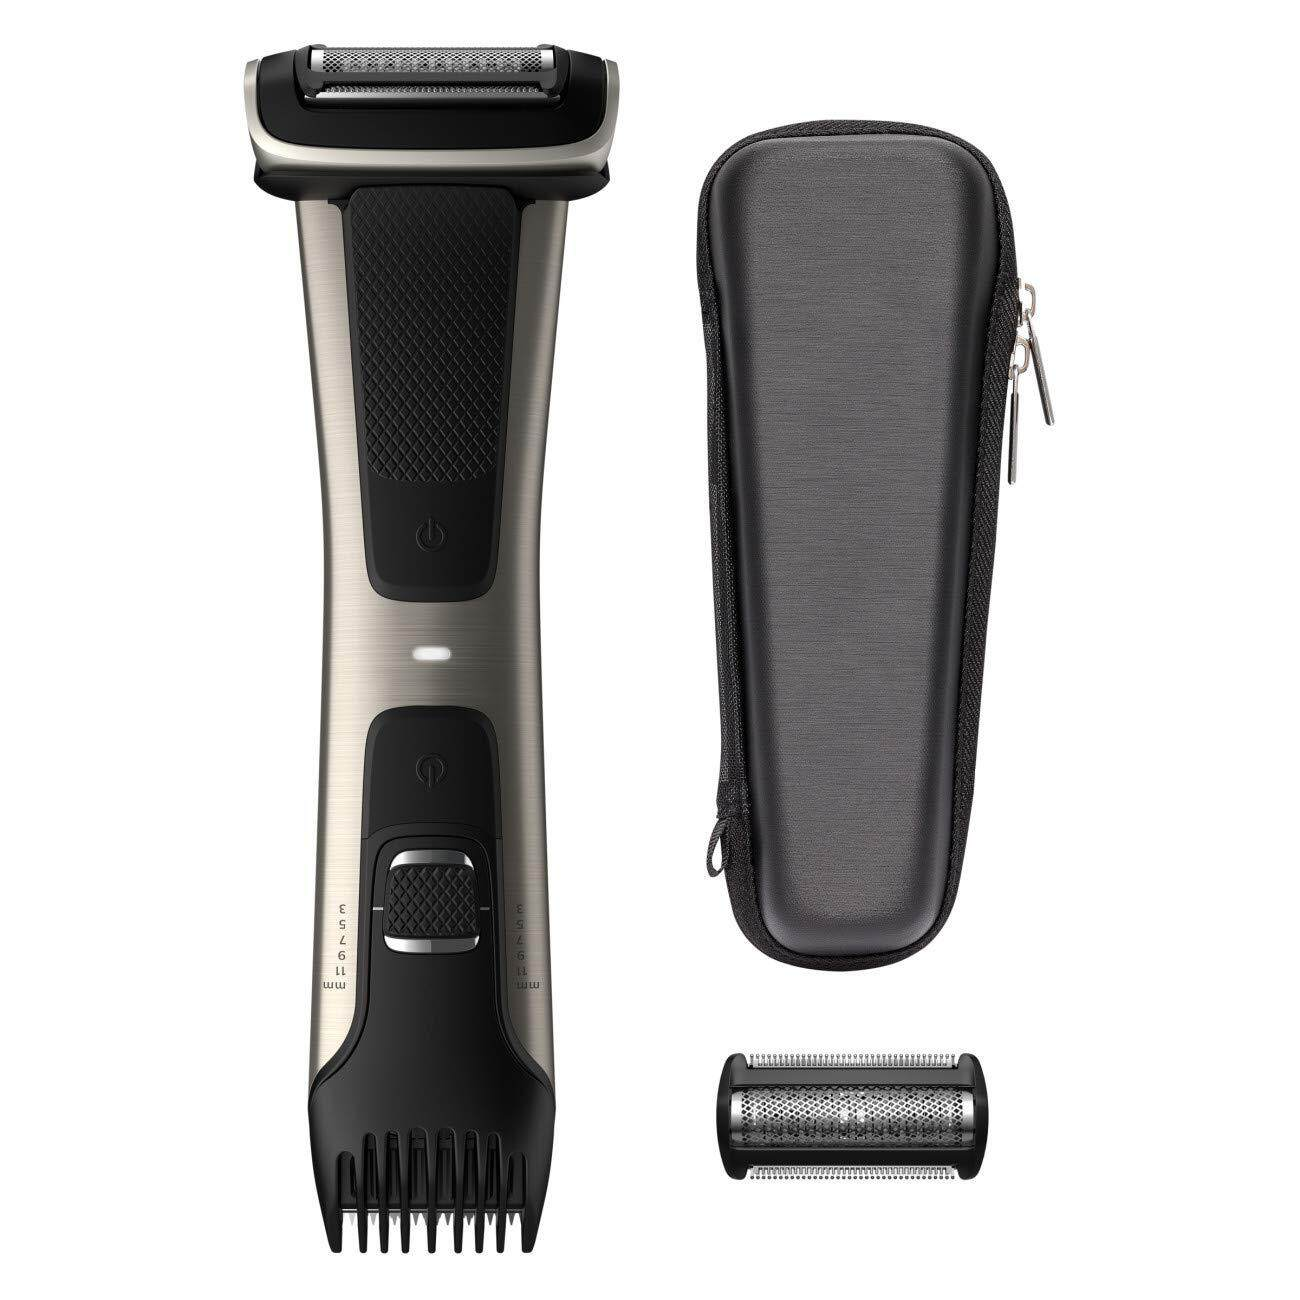 [ iiMONO ] Philips Norelco Bodygroomer BG7040/42 - skin friendly, showerproof, body trimmer and shaver with case and replacement head